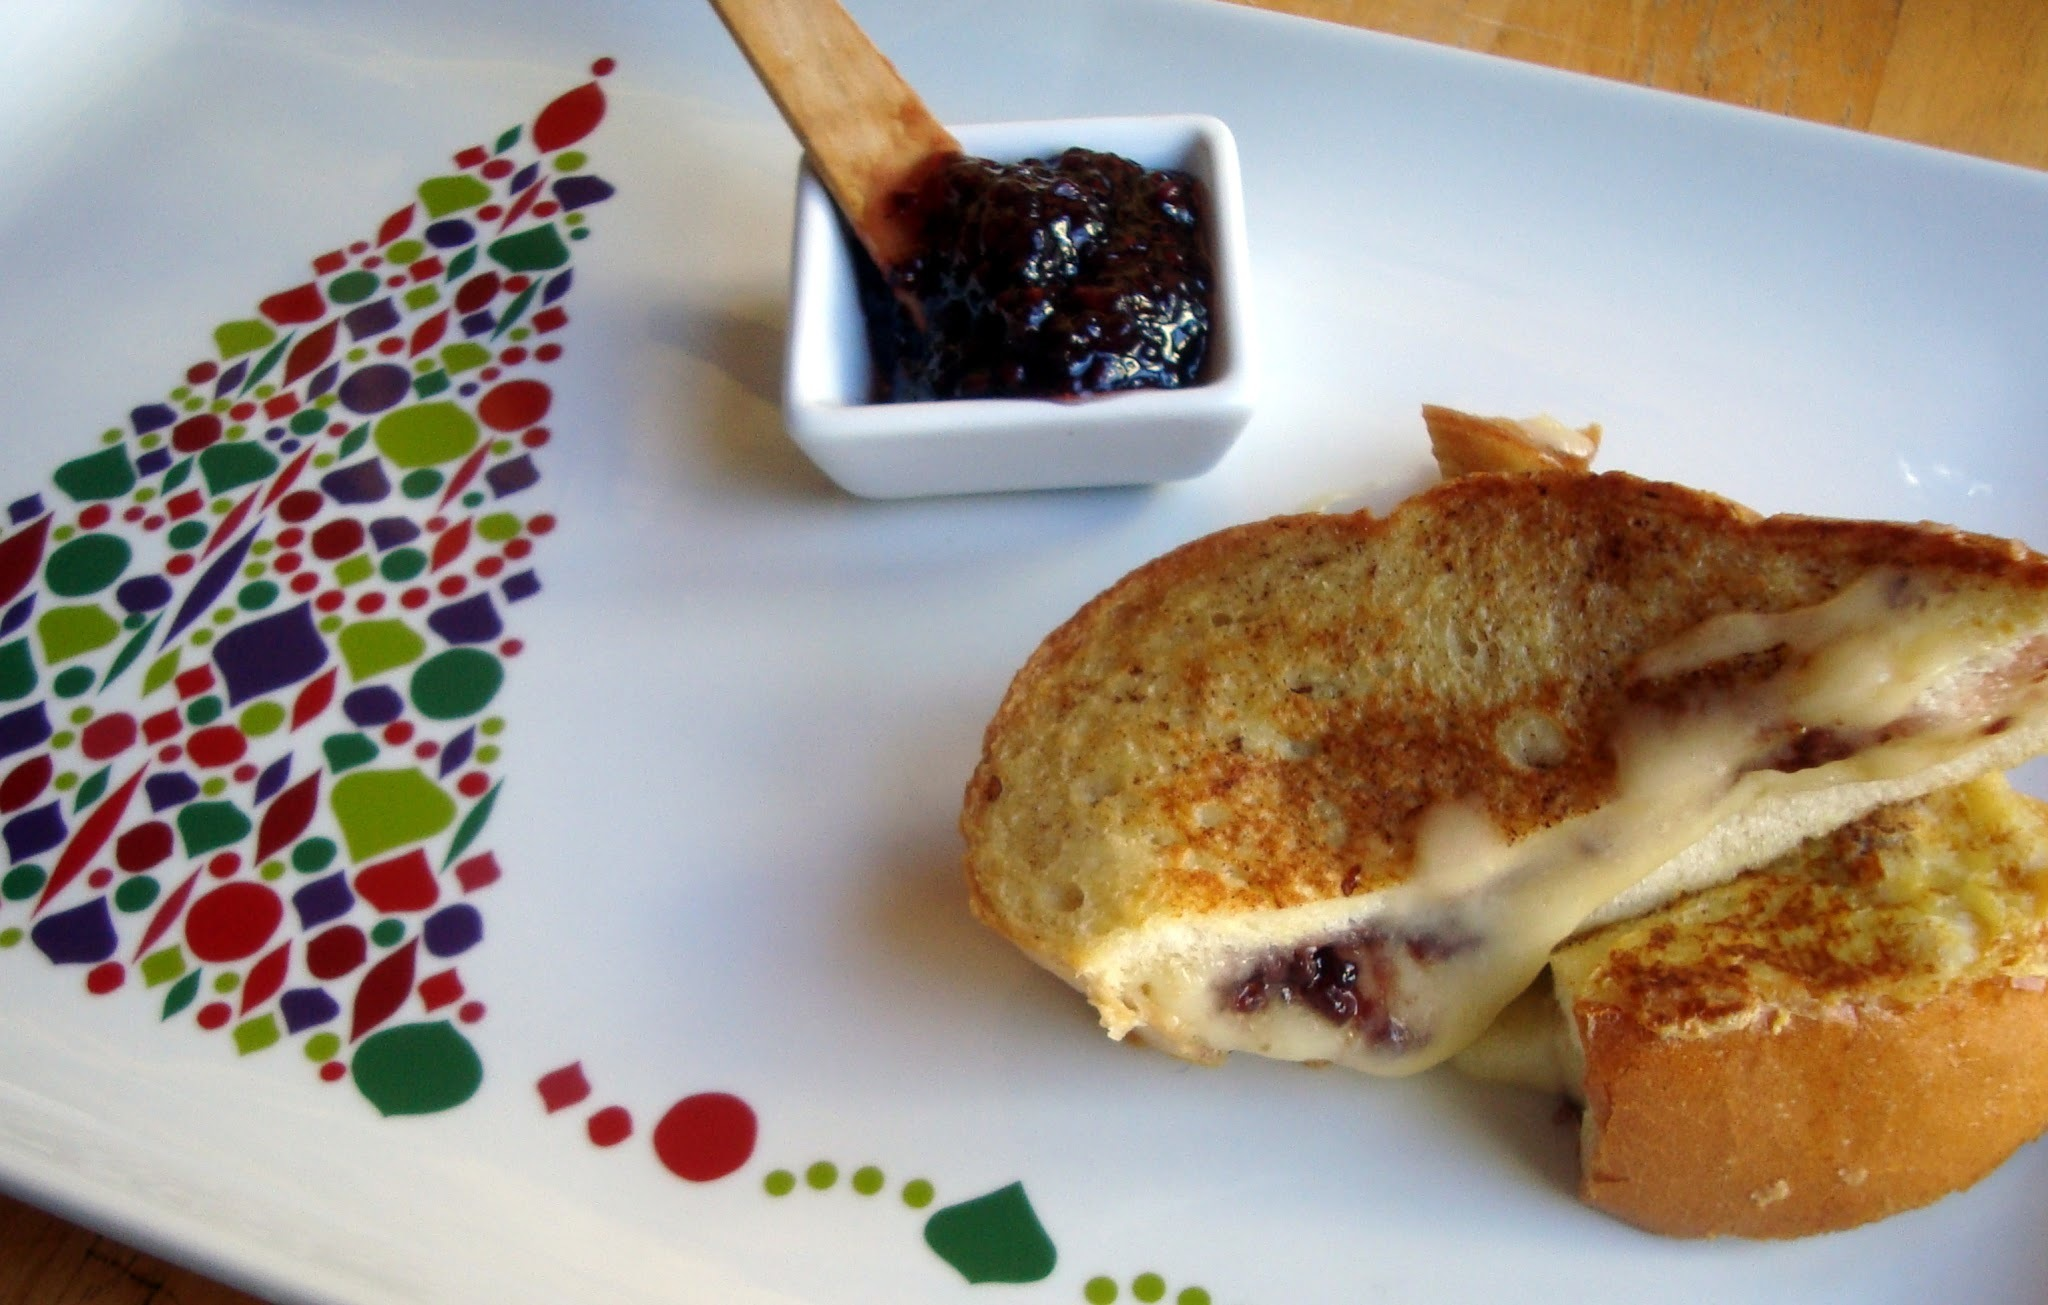 Happy New Year! Happy Bloggaversary! We're celebrating with Brie-Stuffed French Toast!